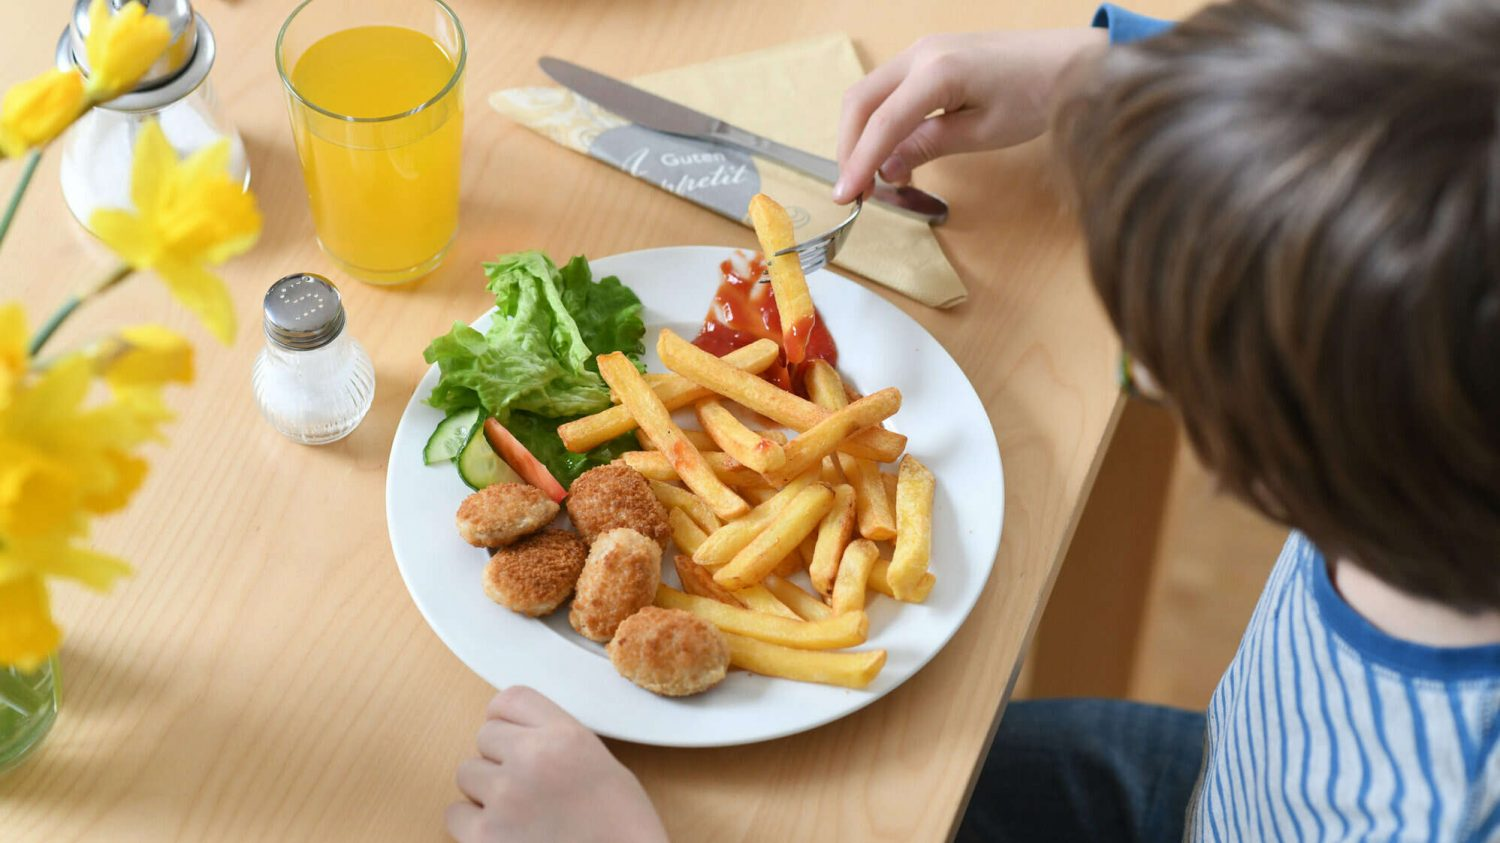 babysitter claims mum demanded £450 for 'emotional damages' after feeding veggie kids chicken nuggets